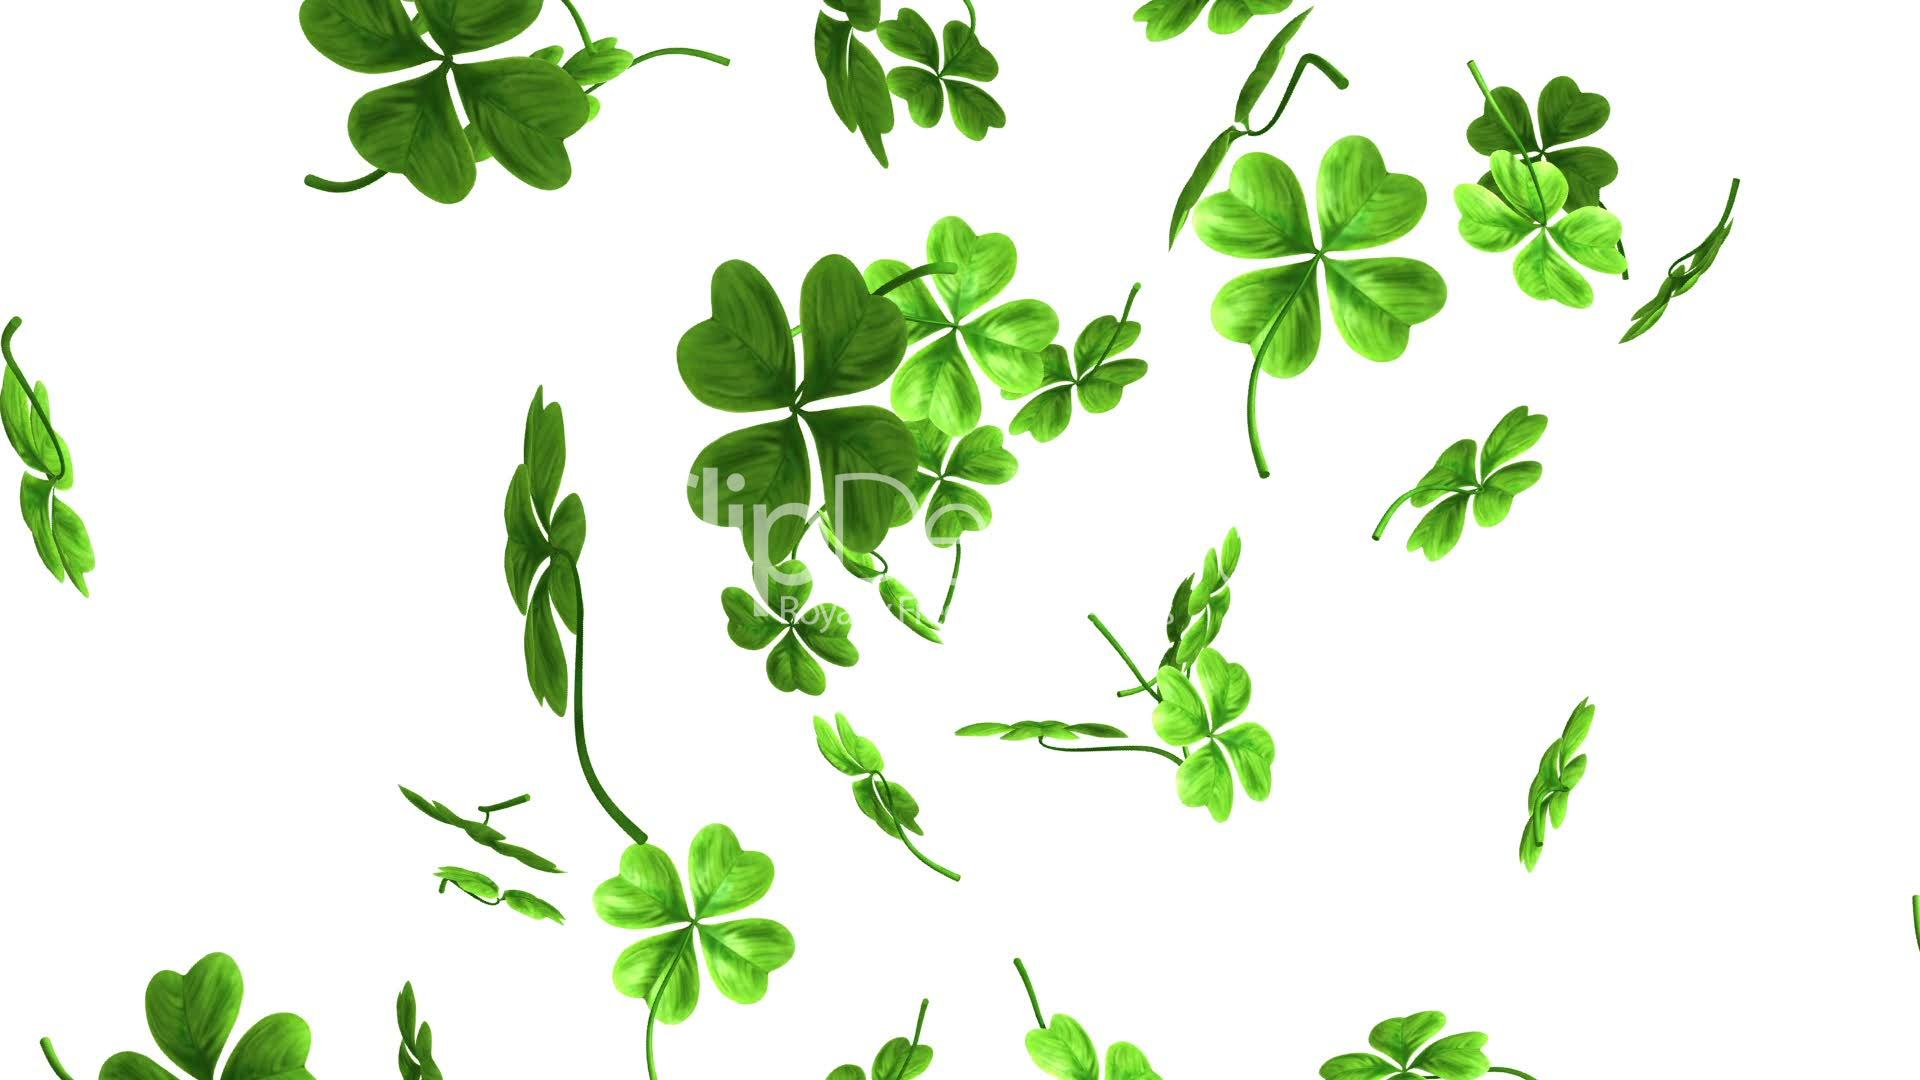 Wallpaper Leaves Falling Falling Shamrock Leaves Royalty Free Video And Stock Footage